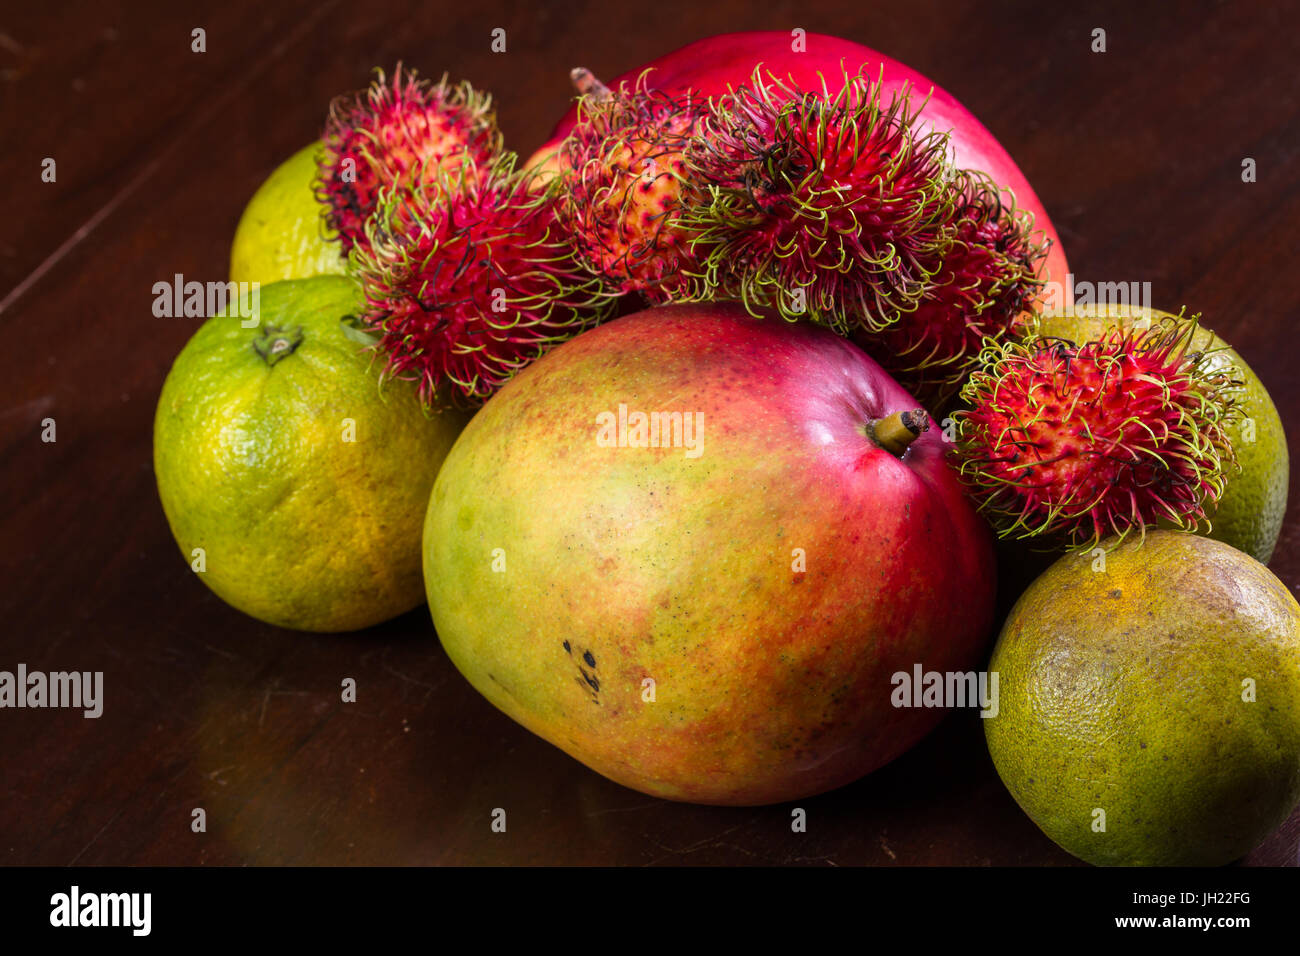 tropical fruit on a kitchen table including mangoes, juicing oranges and colorful rambutan - Stock Image